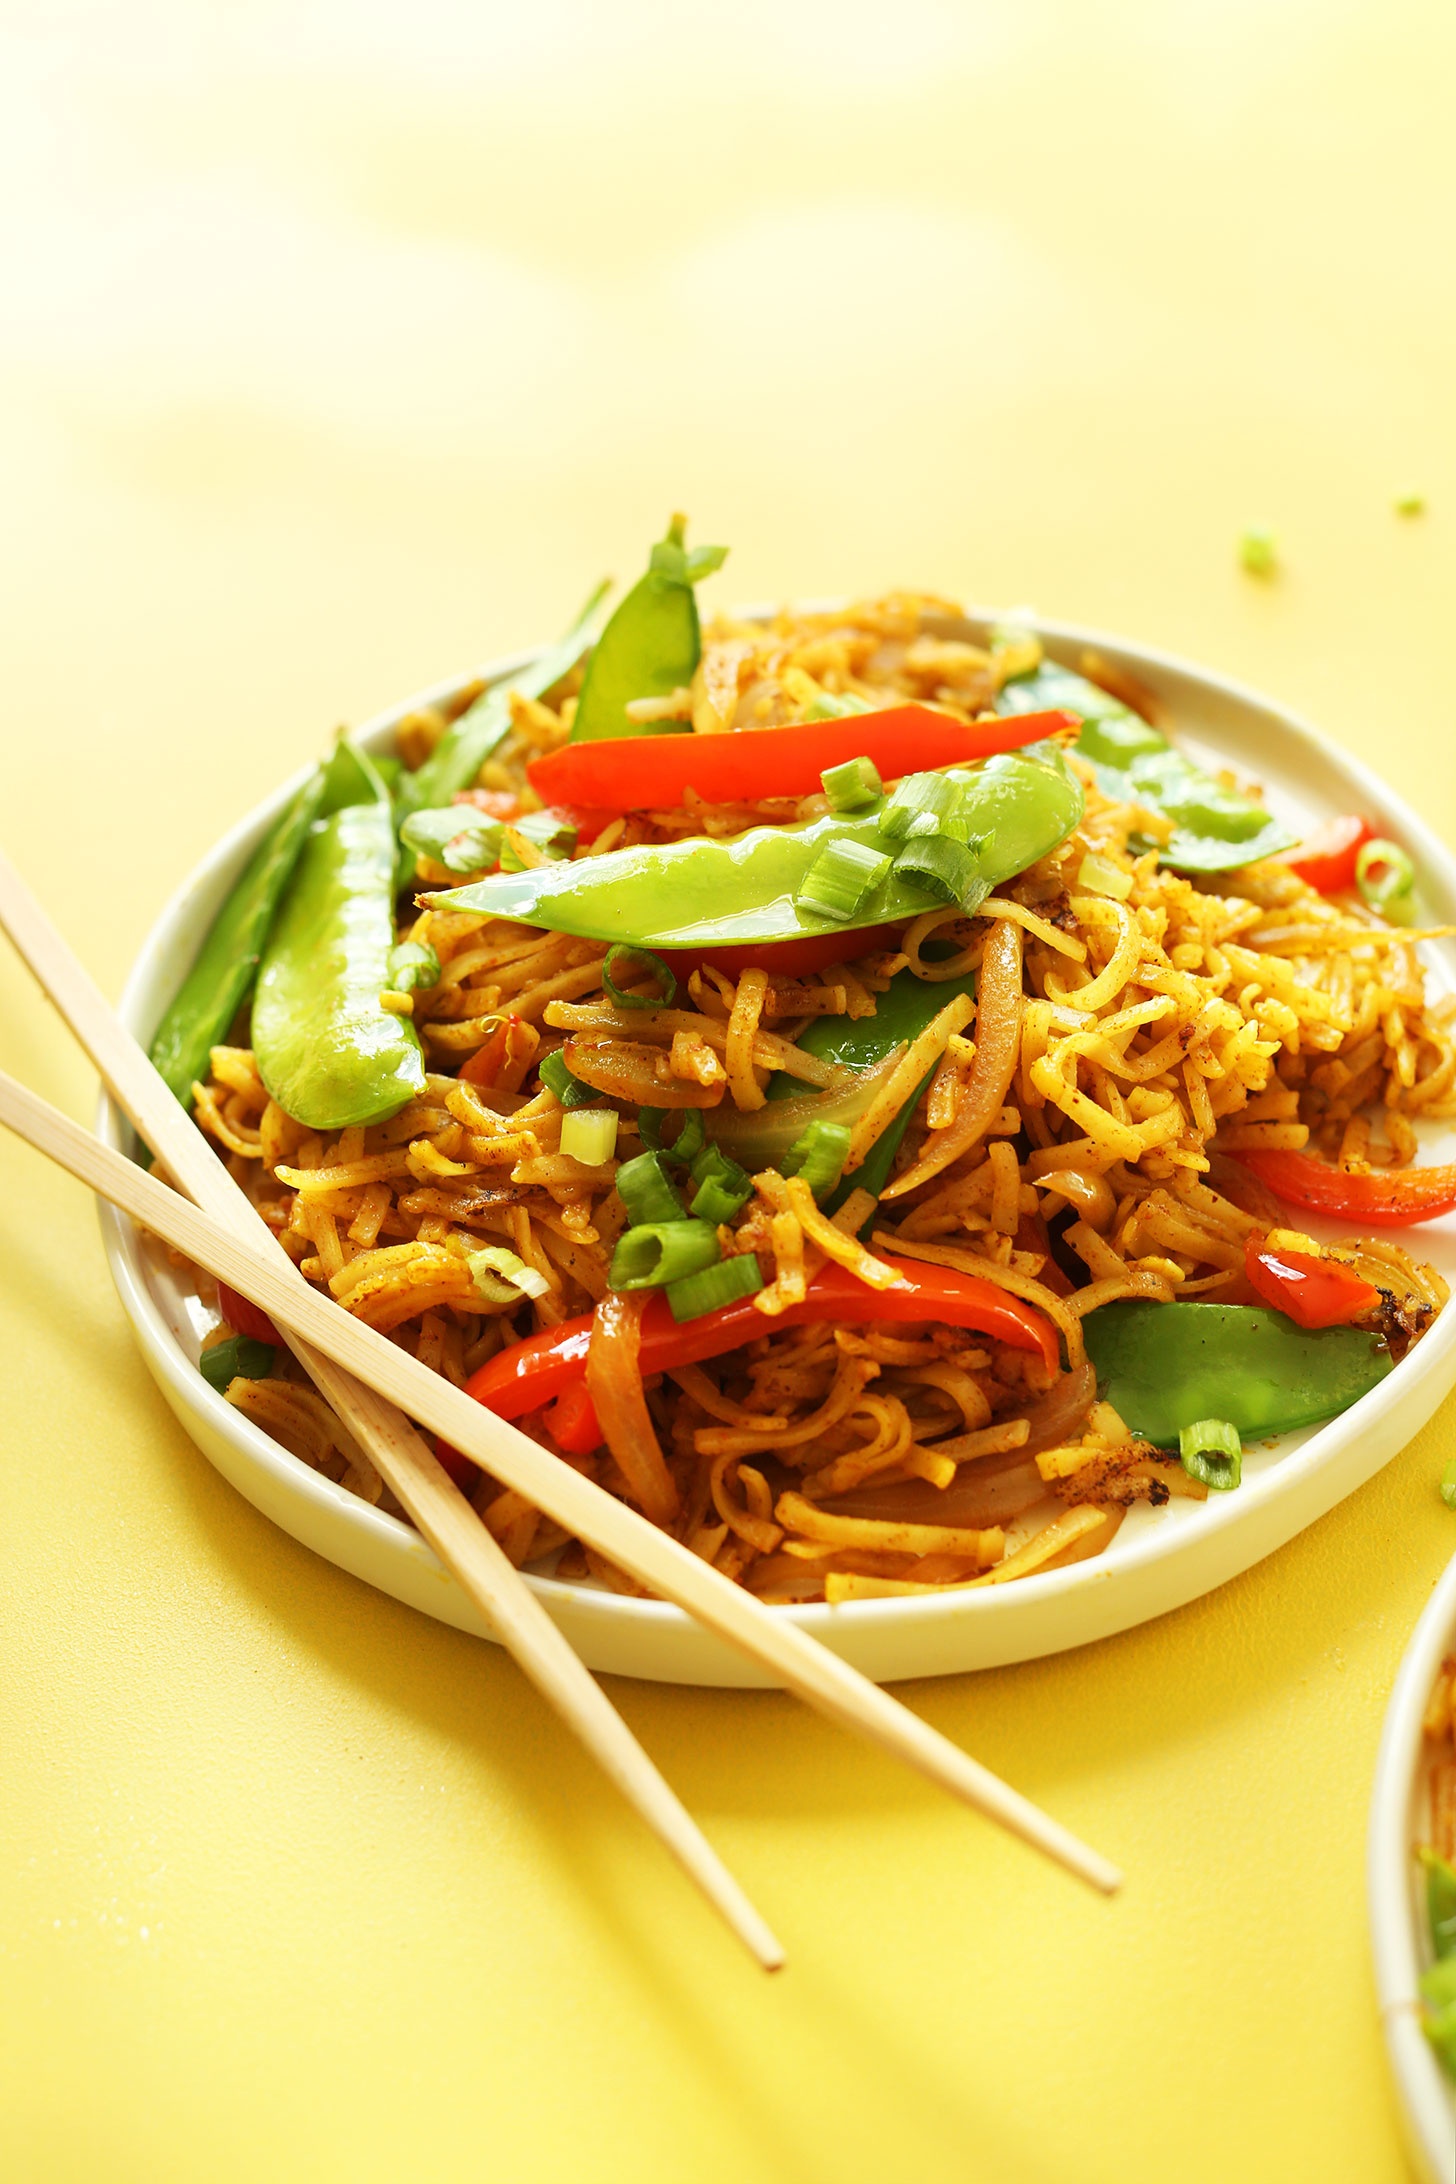 Vegan singapore noodles minimalist baker recipes plate of our singapore noodles recipe for a simple gluten free vegan dinner forumfinder